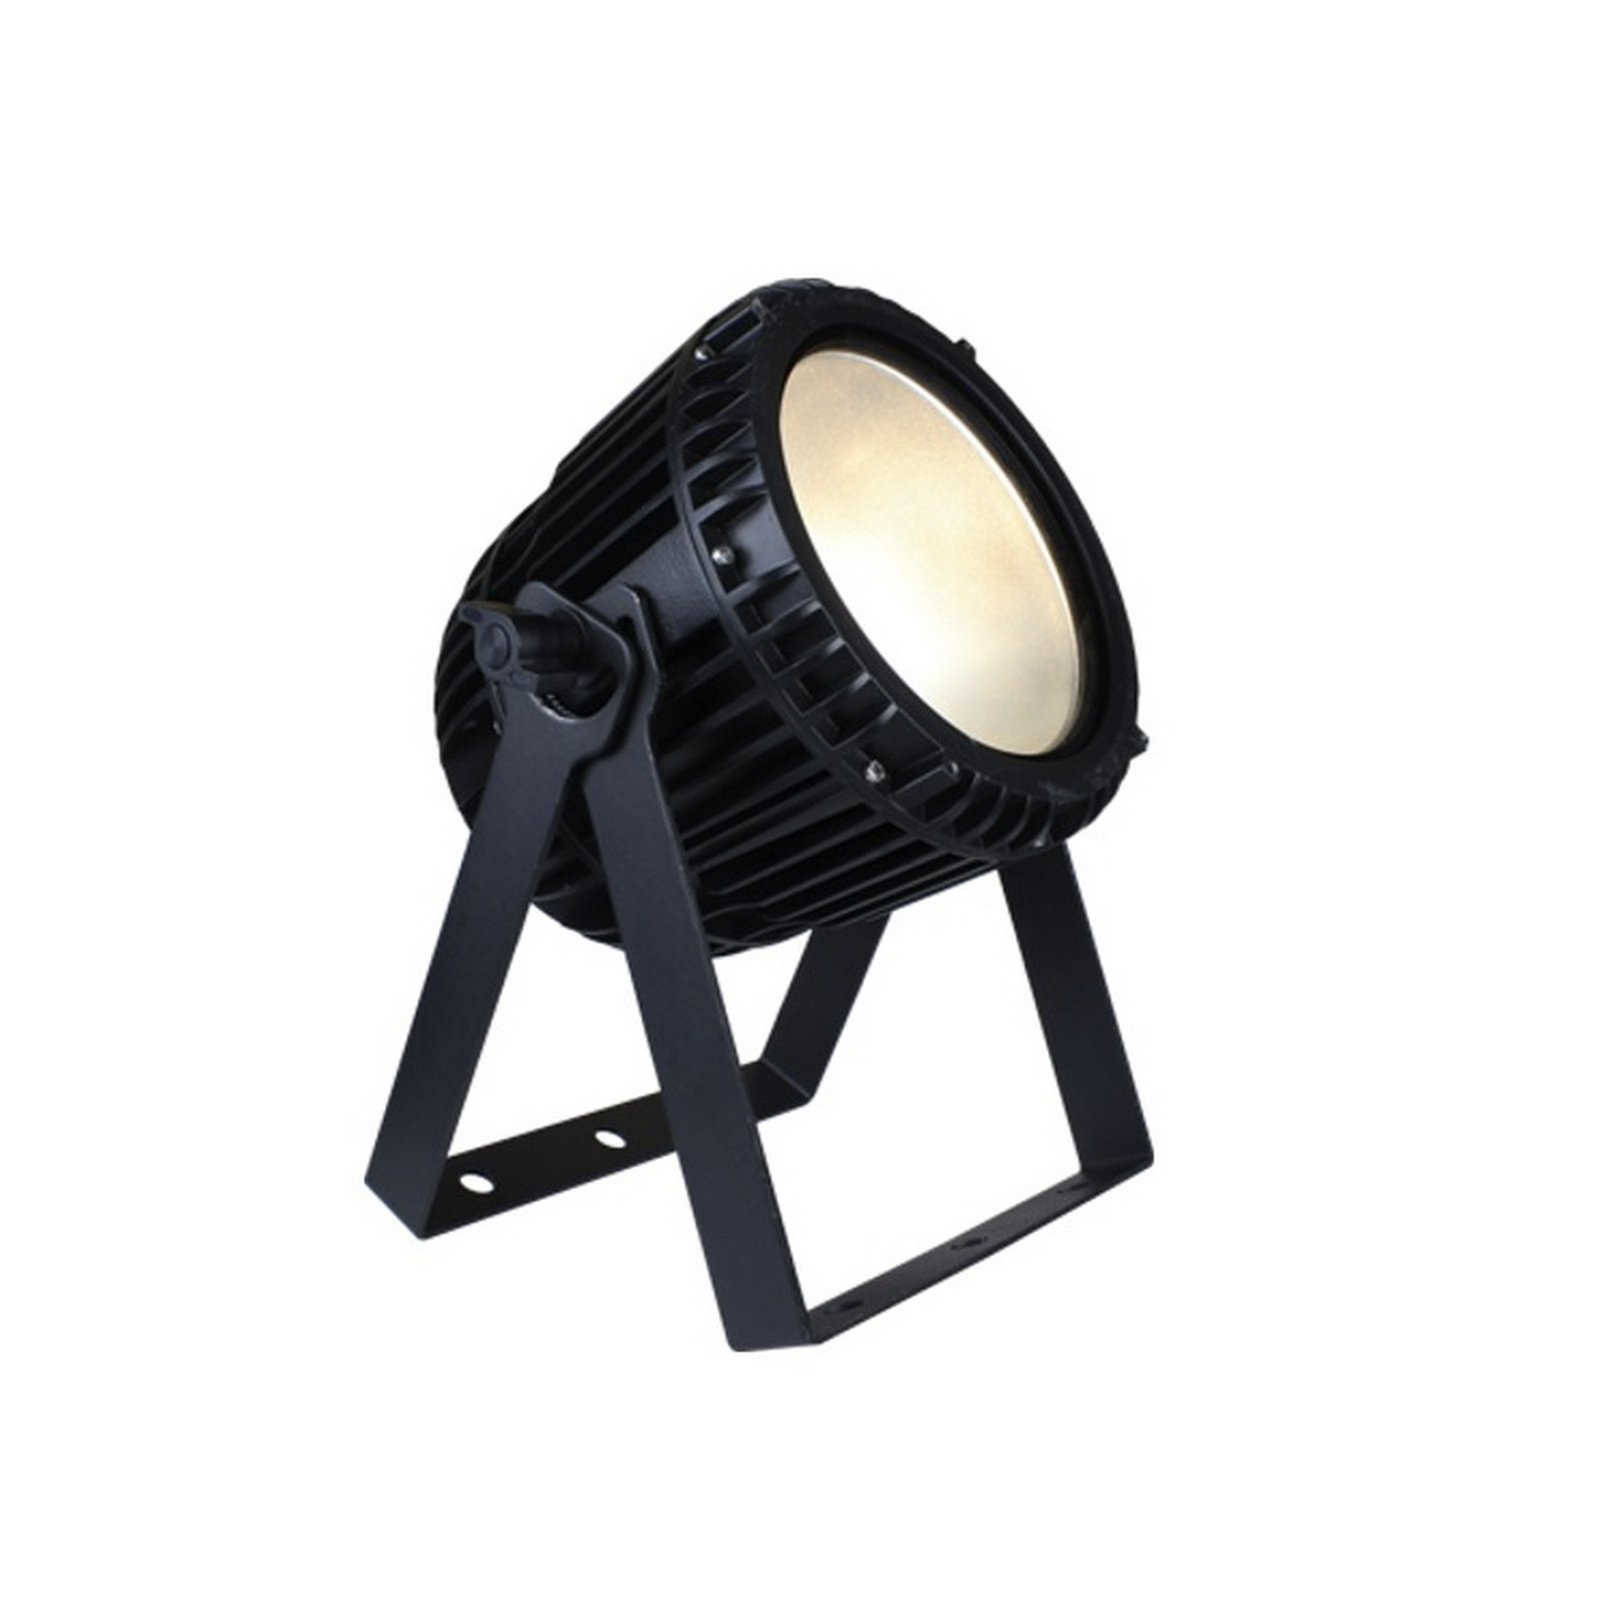 Blizzard Lighting TOURnado WW COB | 1x 60W Tungsten COB LED Par Fixture